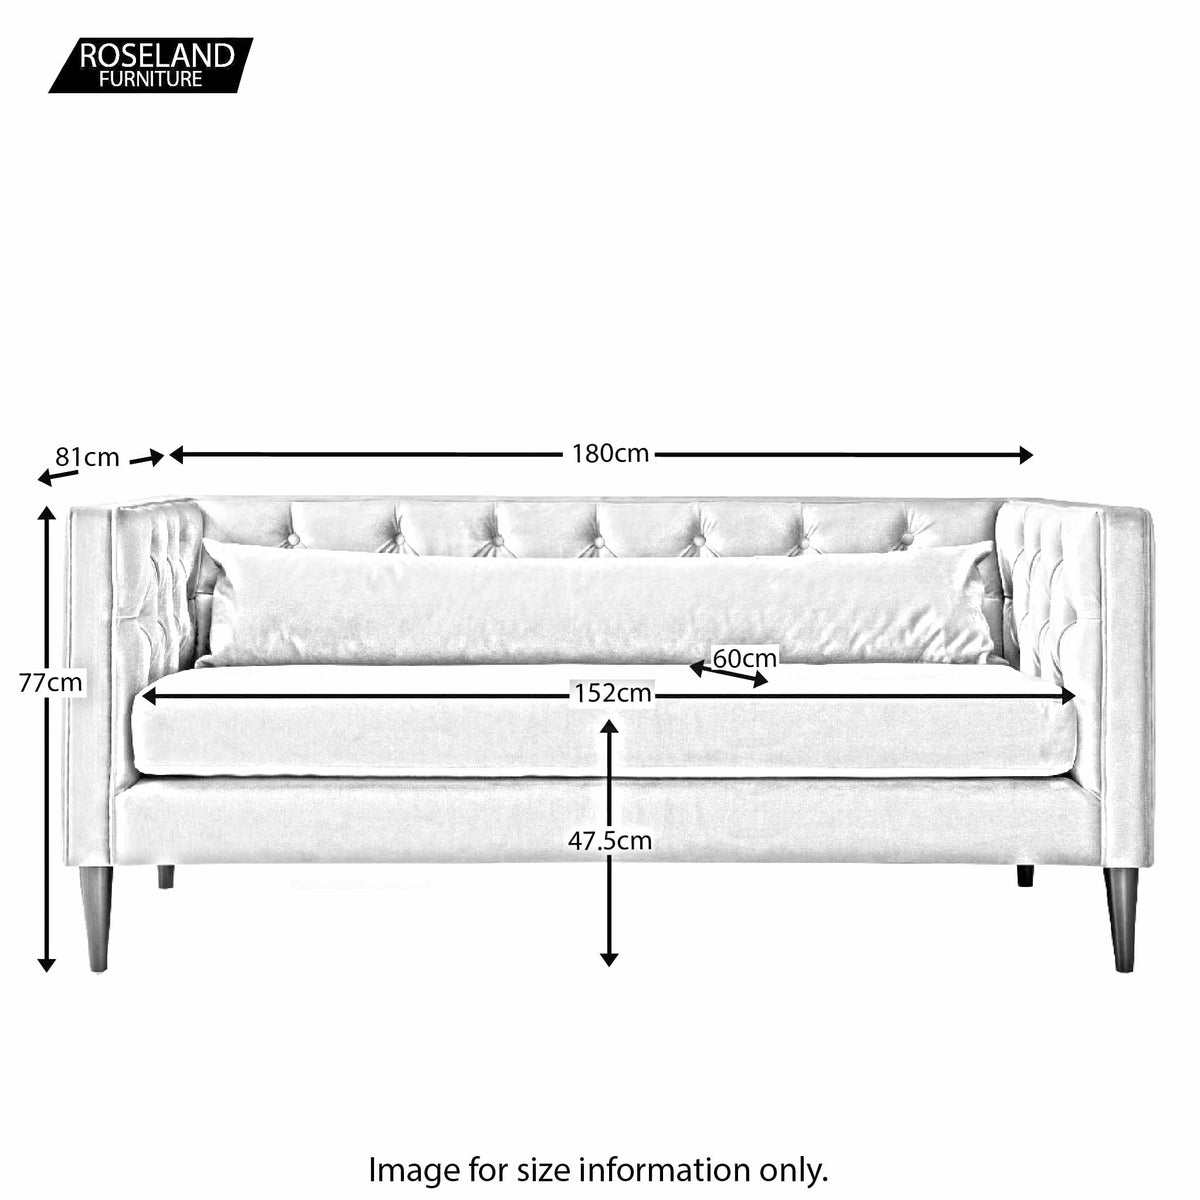 Savoy 2 Seater Sofa - Size Guide